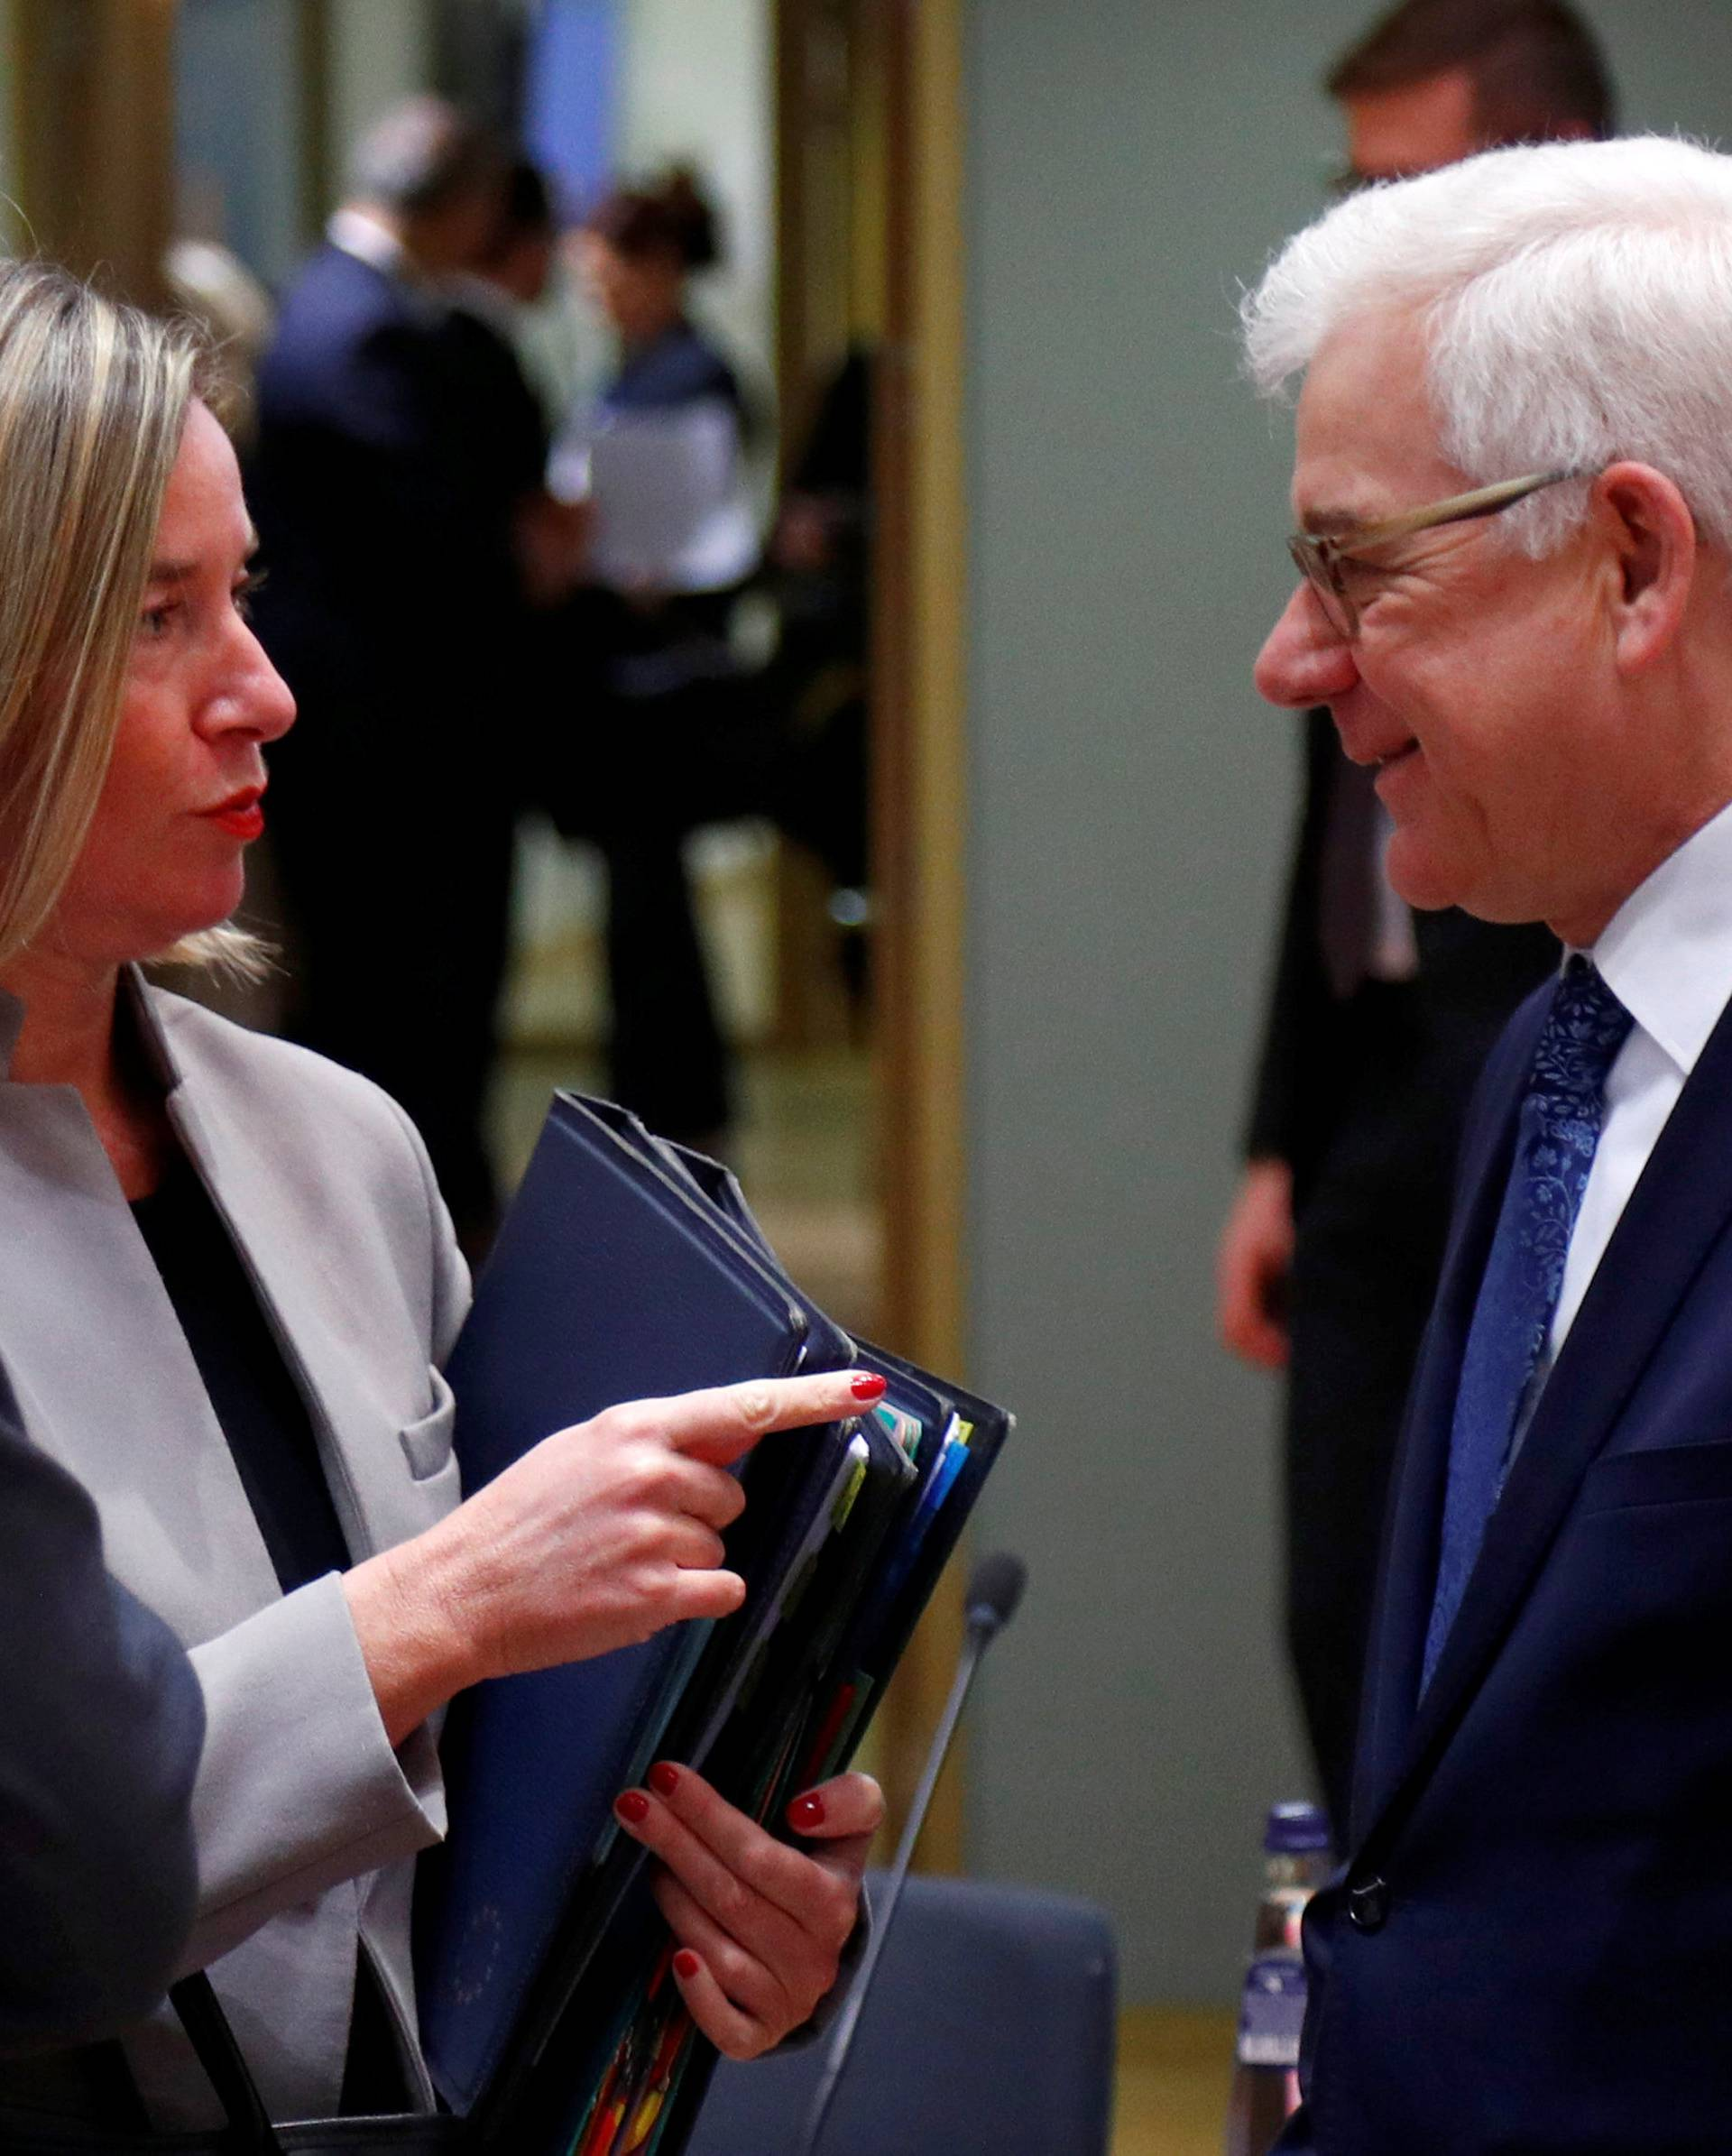 EU foreign policy chief Mogherini talks to Poland's Foreign Minister Czaputowicz during EU foreign ministers meeting in Brussels